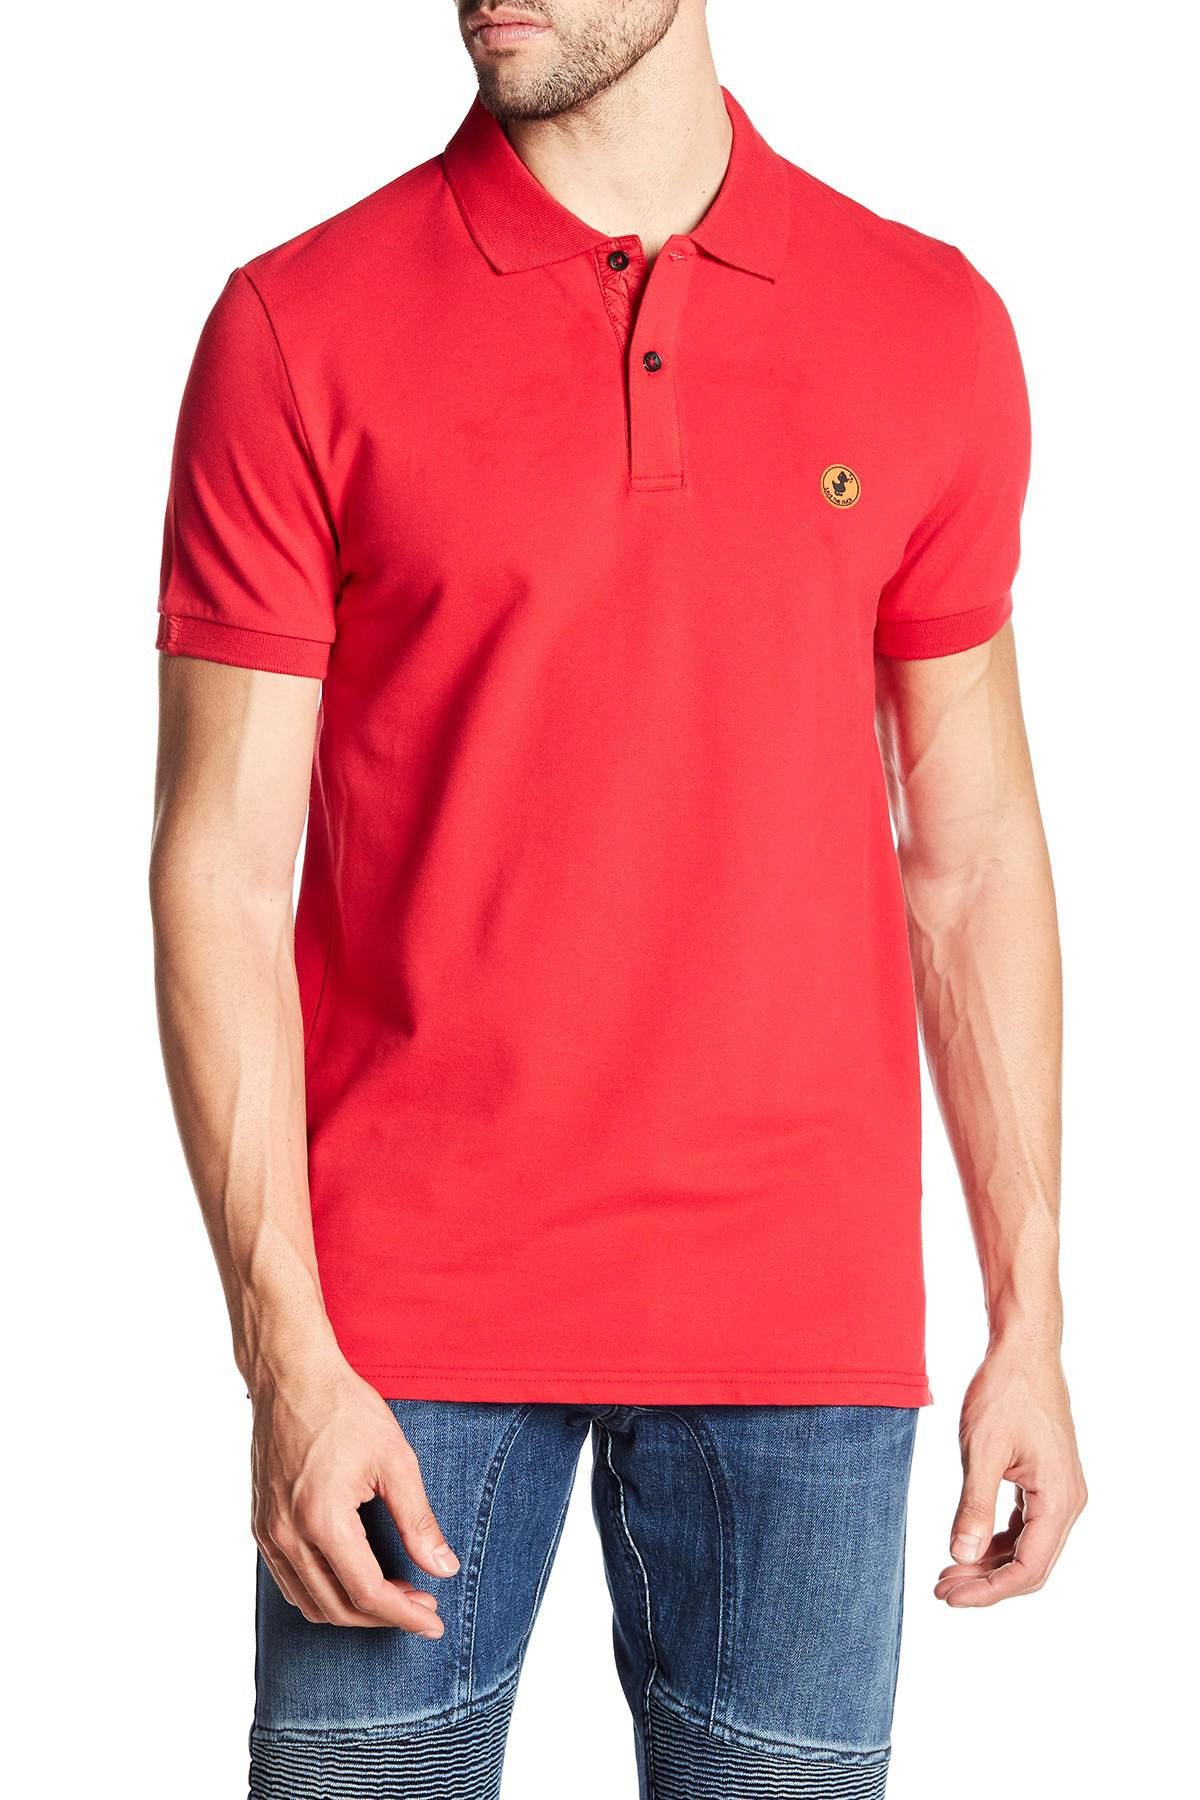 31de4d6c8974a Save The Duck Short Sleeved Polo Shirt in Red for Men - Lyst